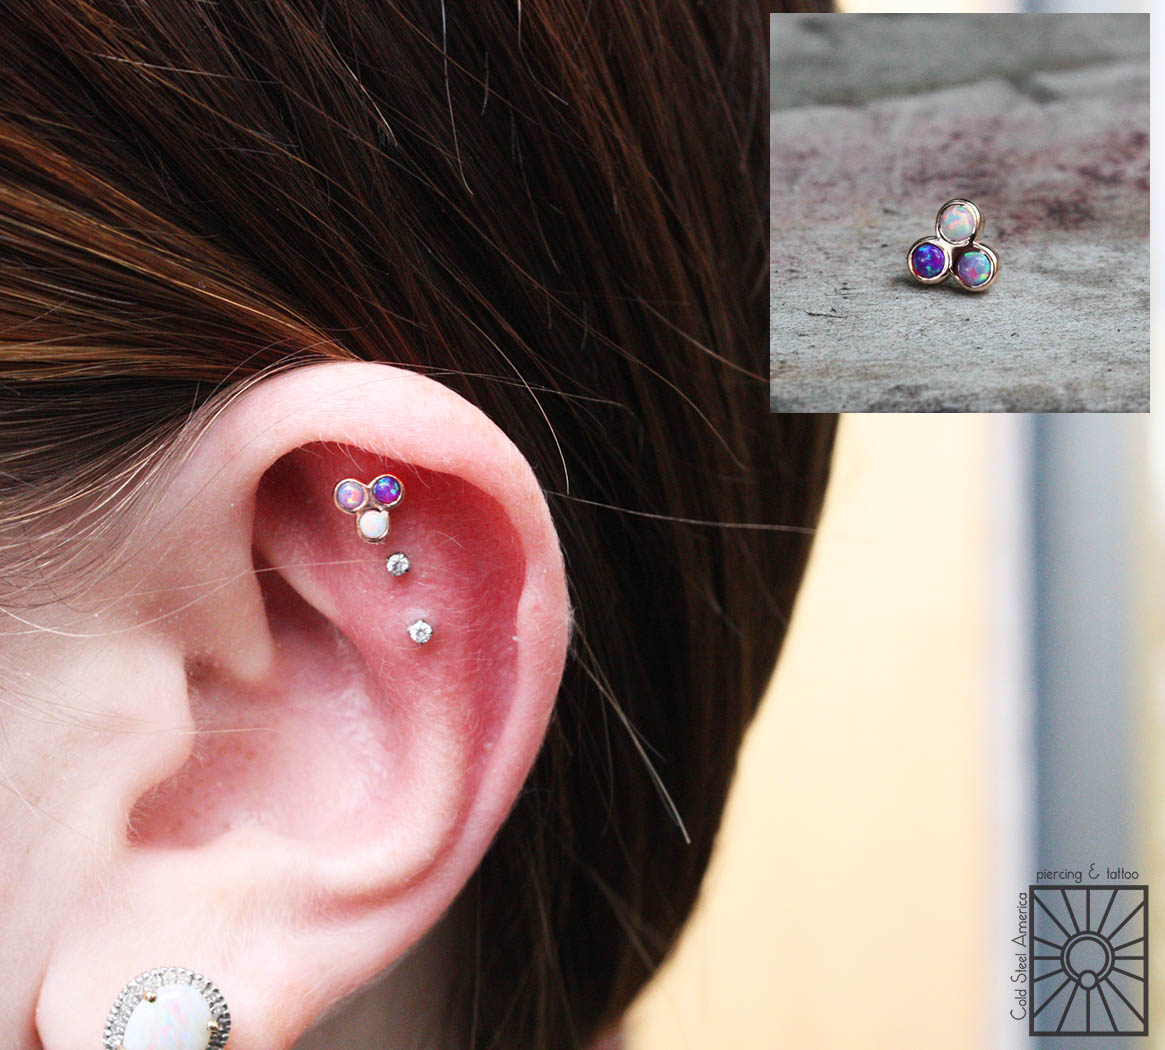 """We really love when clients are as excited about amazing jewelry as we are, and this fantastic lady is definitely one of those clients! She picked up this custom piece today, solid 14 karat Rose Gold """"trinity cab cluster"""" threadless end with synthetic White, Lavender, and Purple opals from Body Vision Los Angeles. So flipping adorable!"""